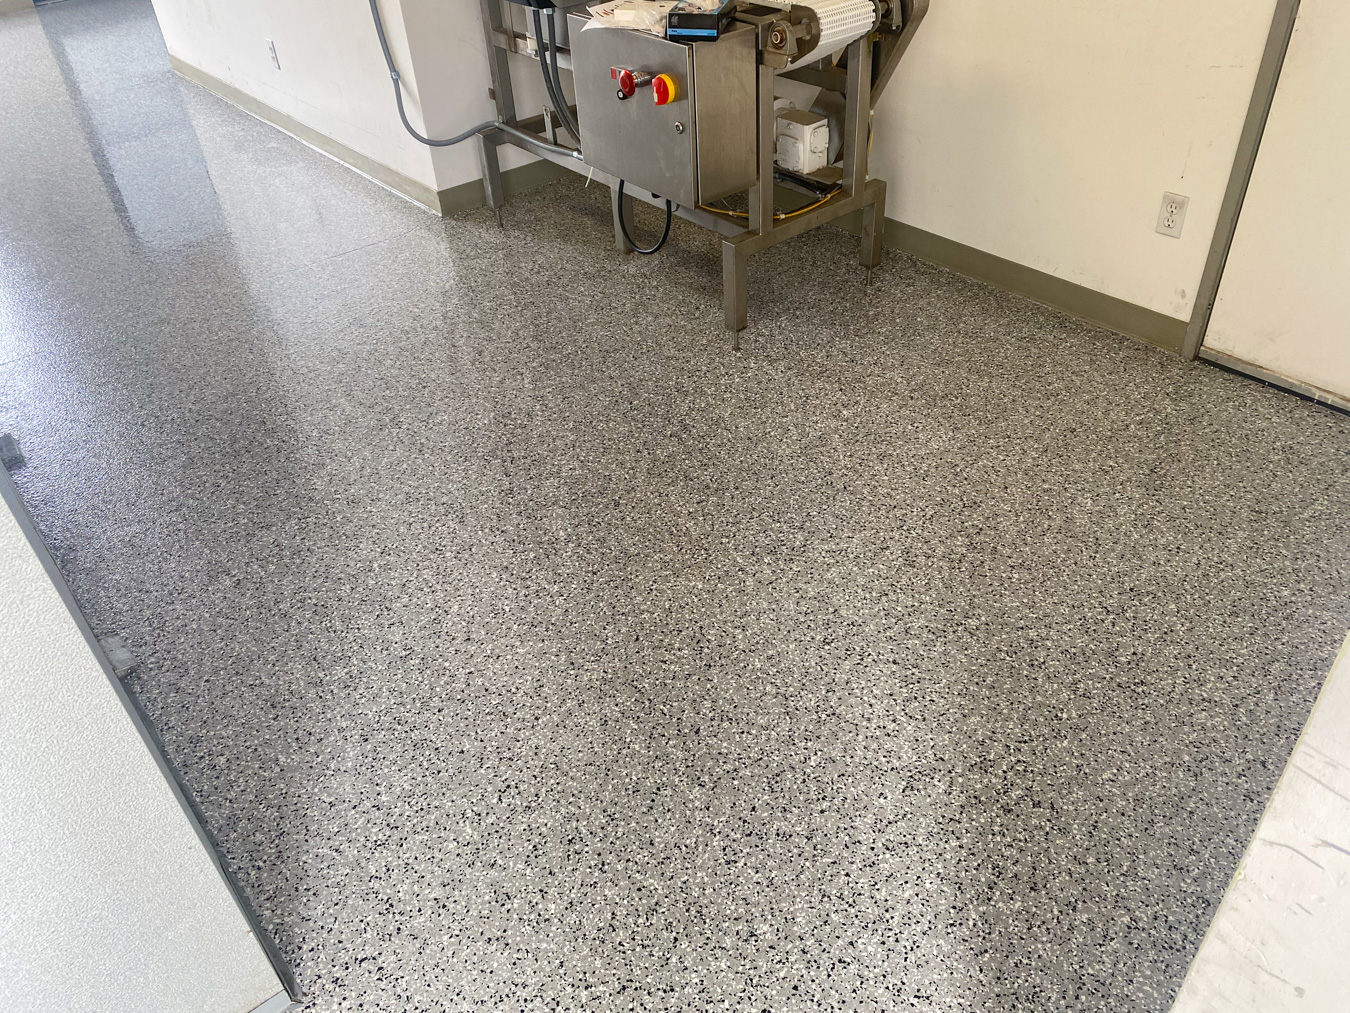 Concrete epoxy coating in a commercial kitchen